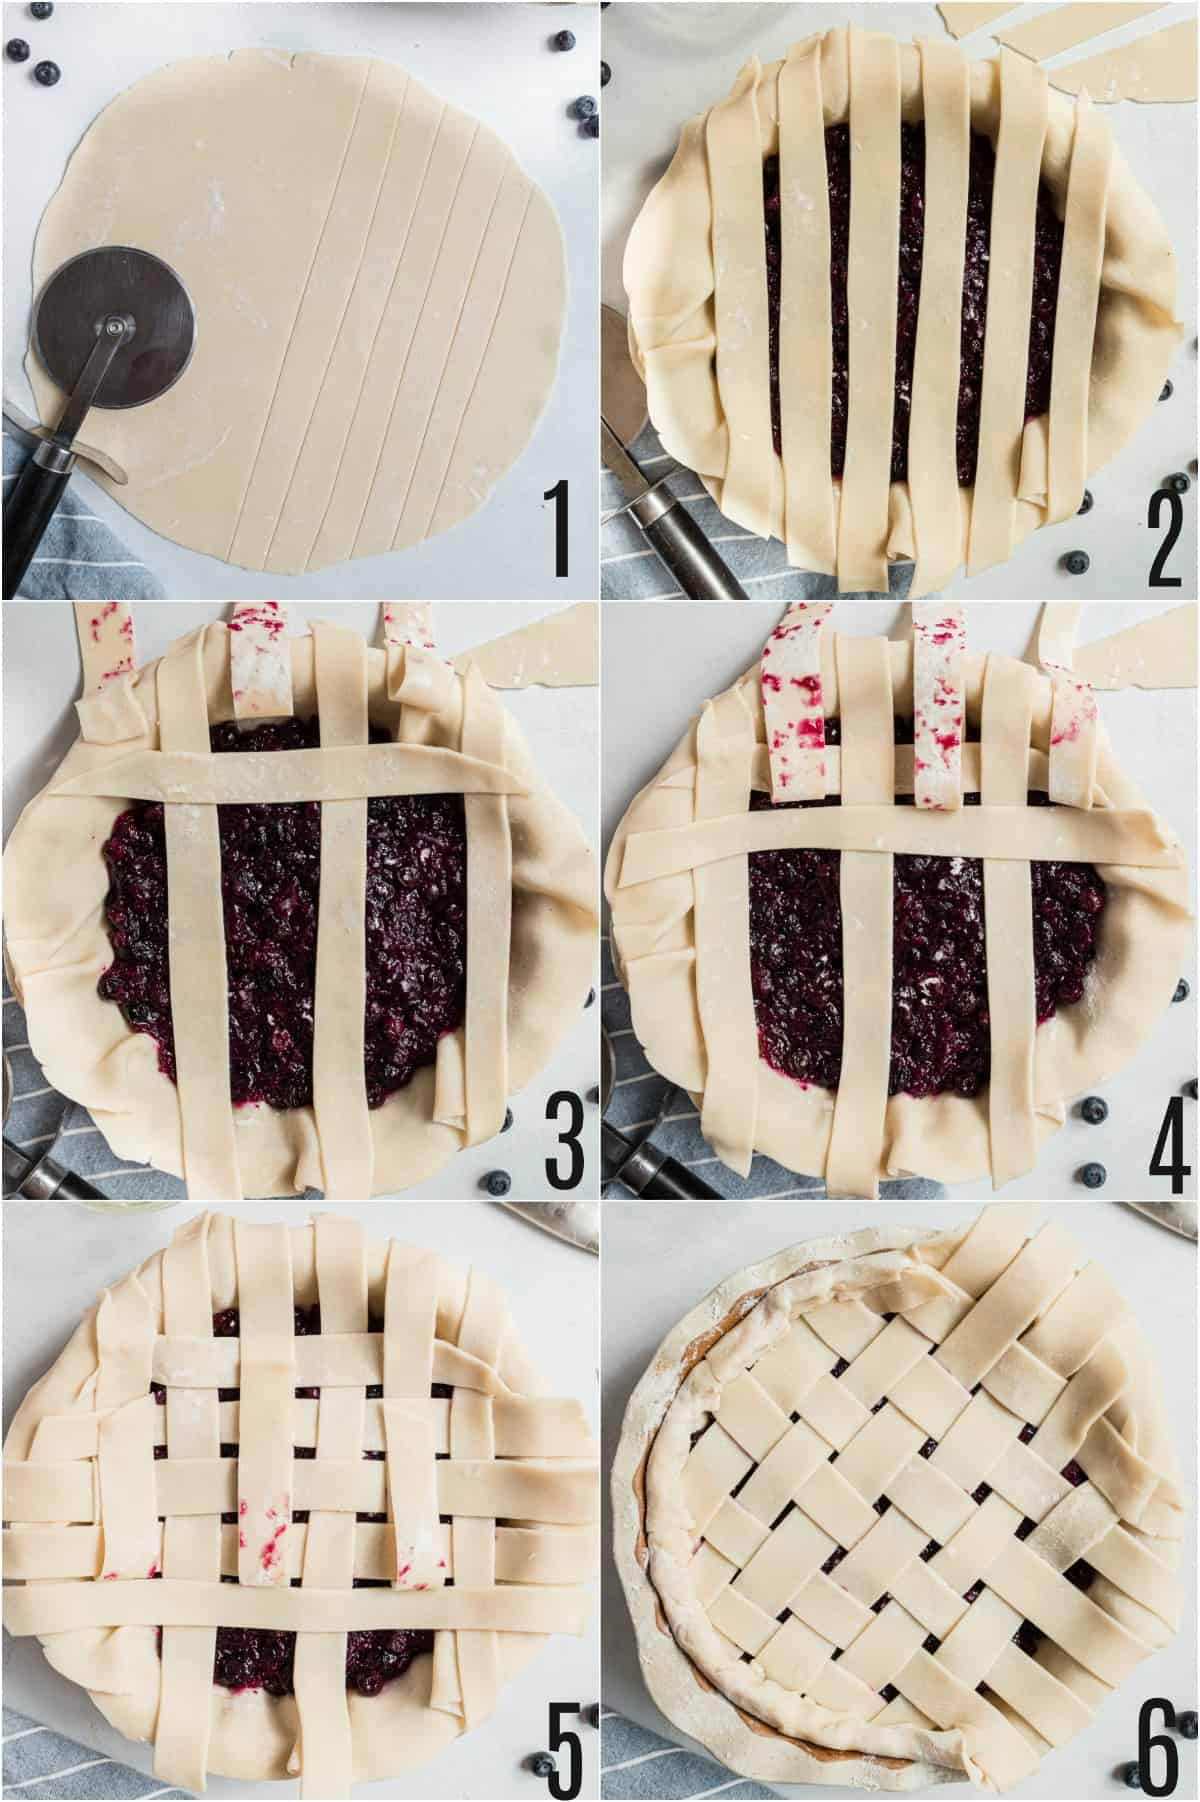 Step by step photos showing how to make a lattice top crust for blueberry pie.